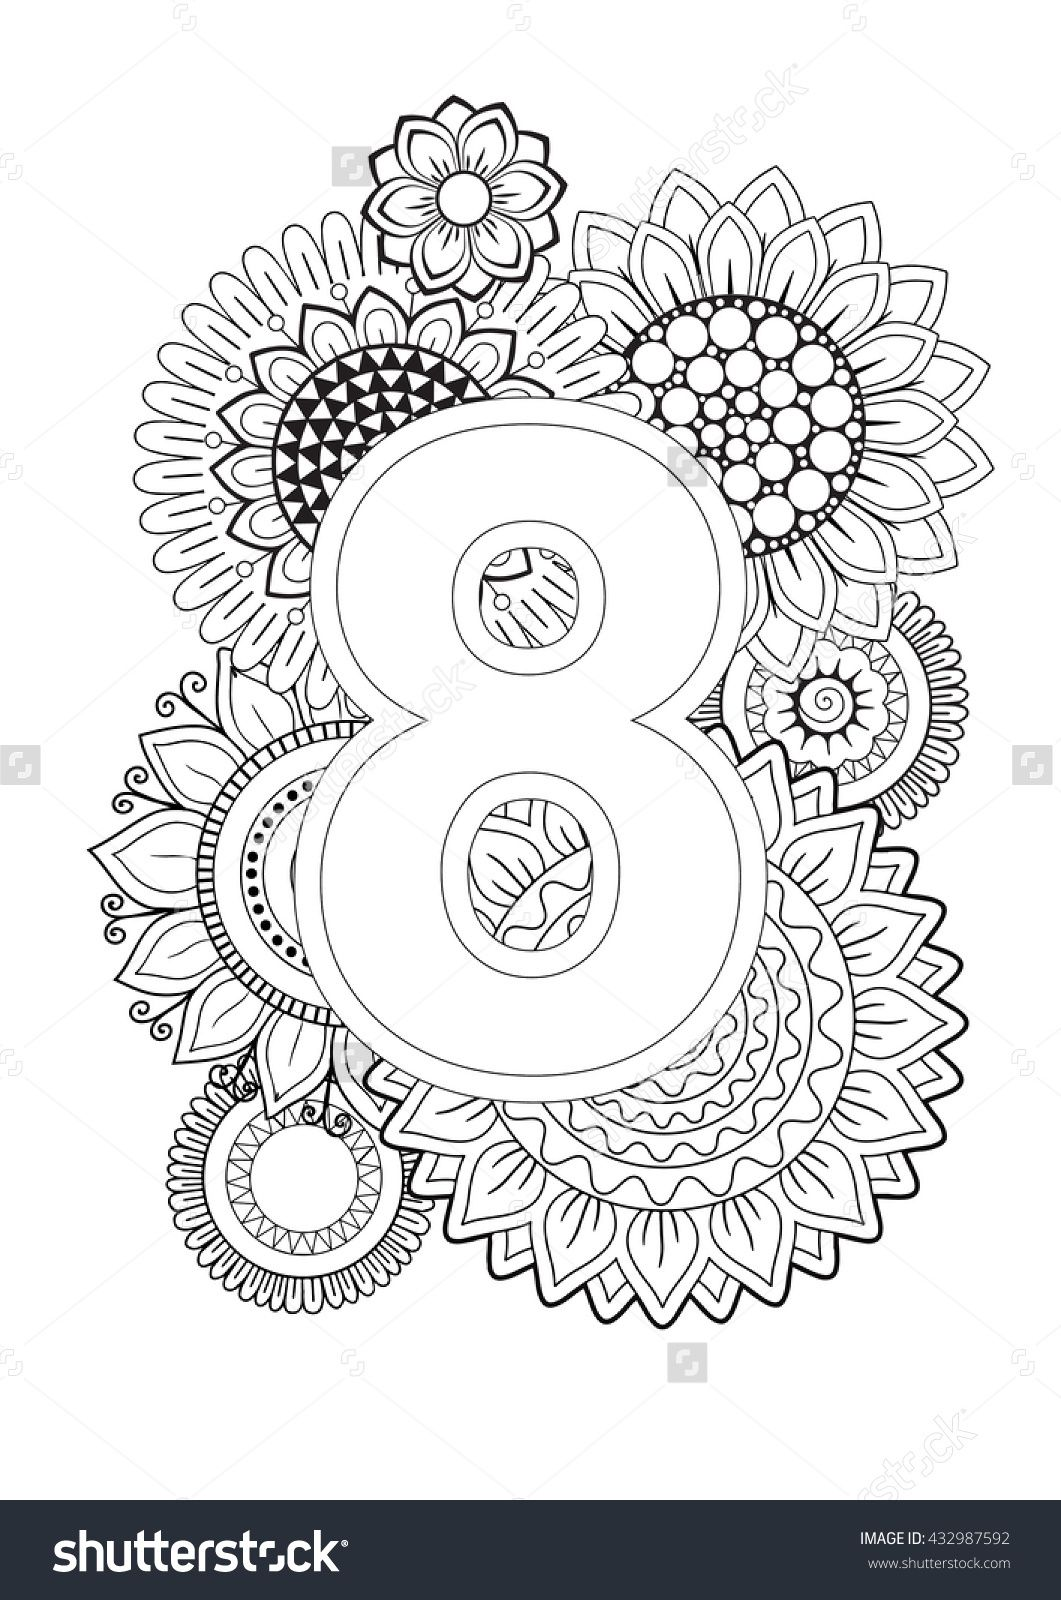 Coloring Book For Adult Mandala And Sunflower ABC Isolated Vector Elements Capital Letter English Alphabet